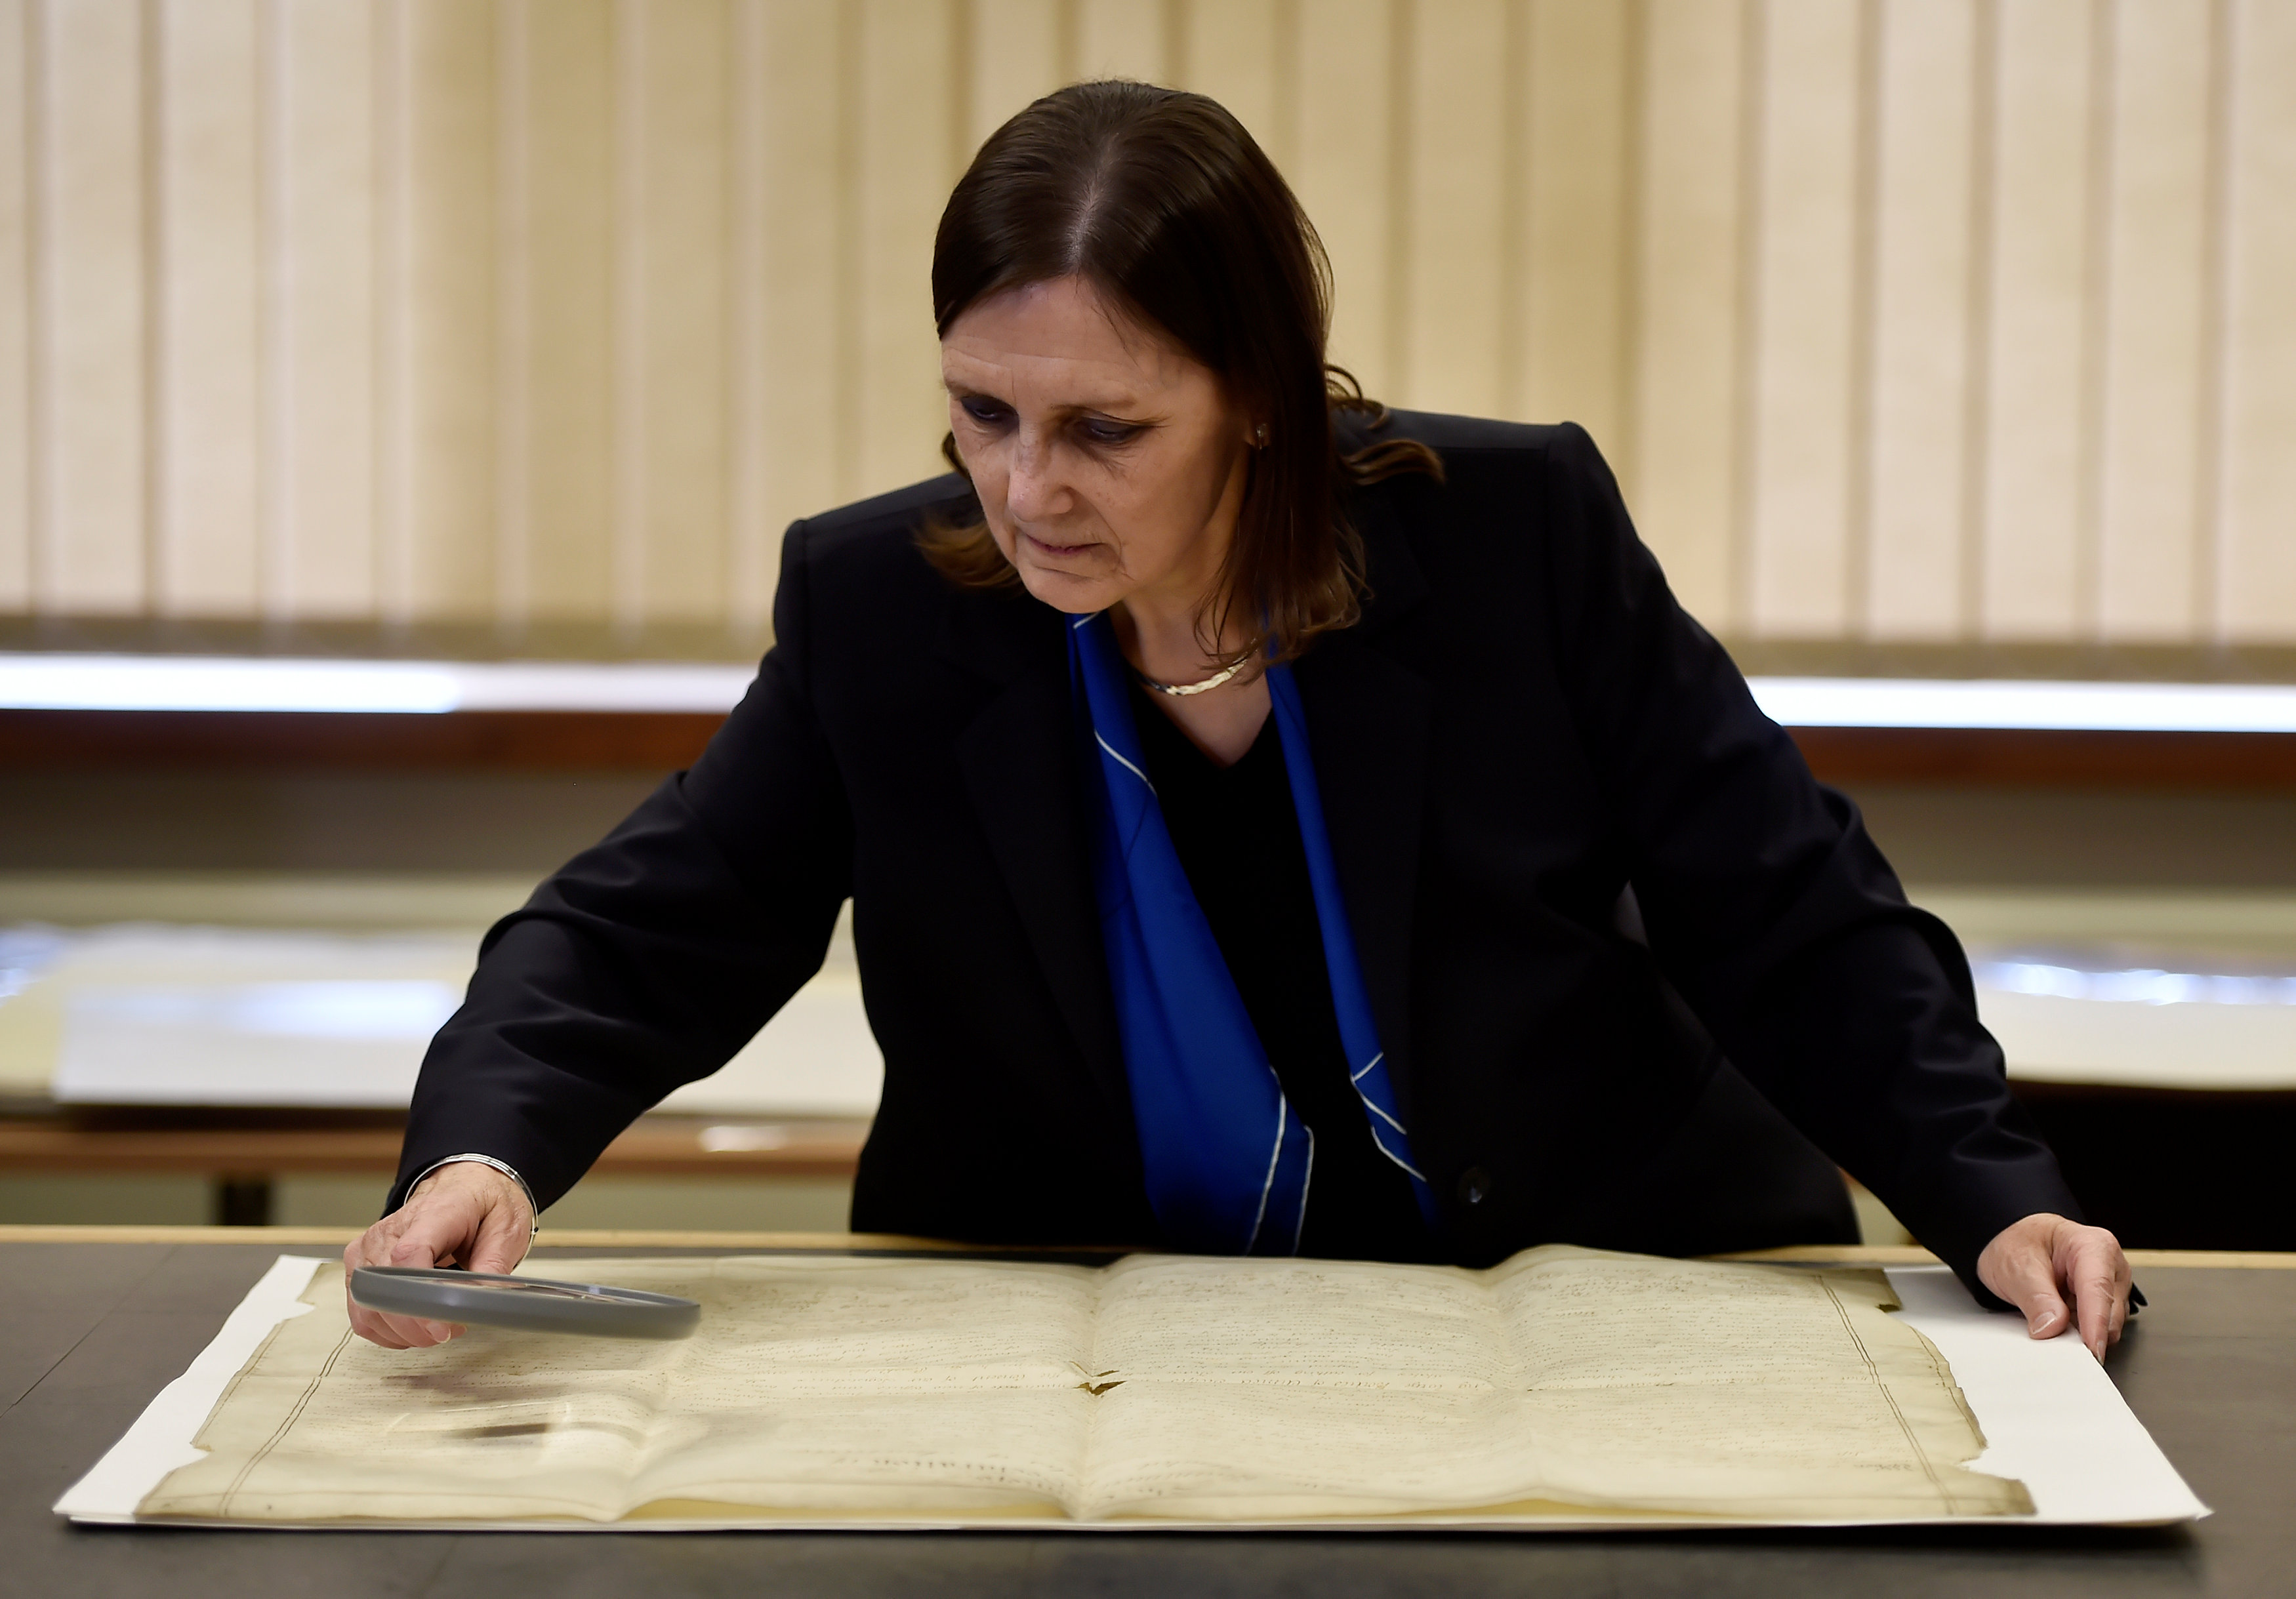 West Sussex County Archivist, Wendy Walker looks at a rare handwritten copy of the U.S. Declaration of Independence at the West Sussex Record Office in Chichester in south England, Britain on April 27, 2017. (REUTERS/Hannah McKay)